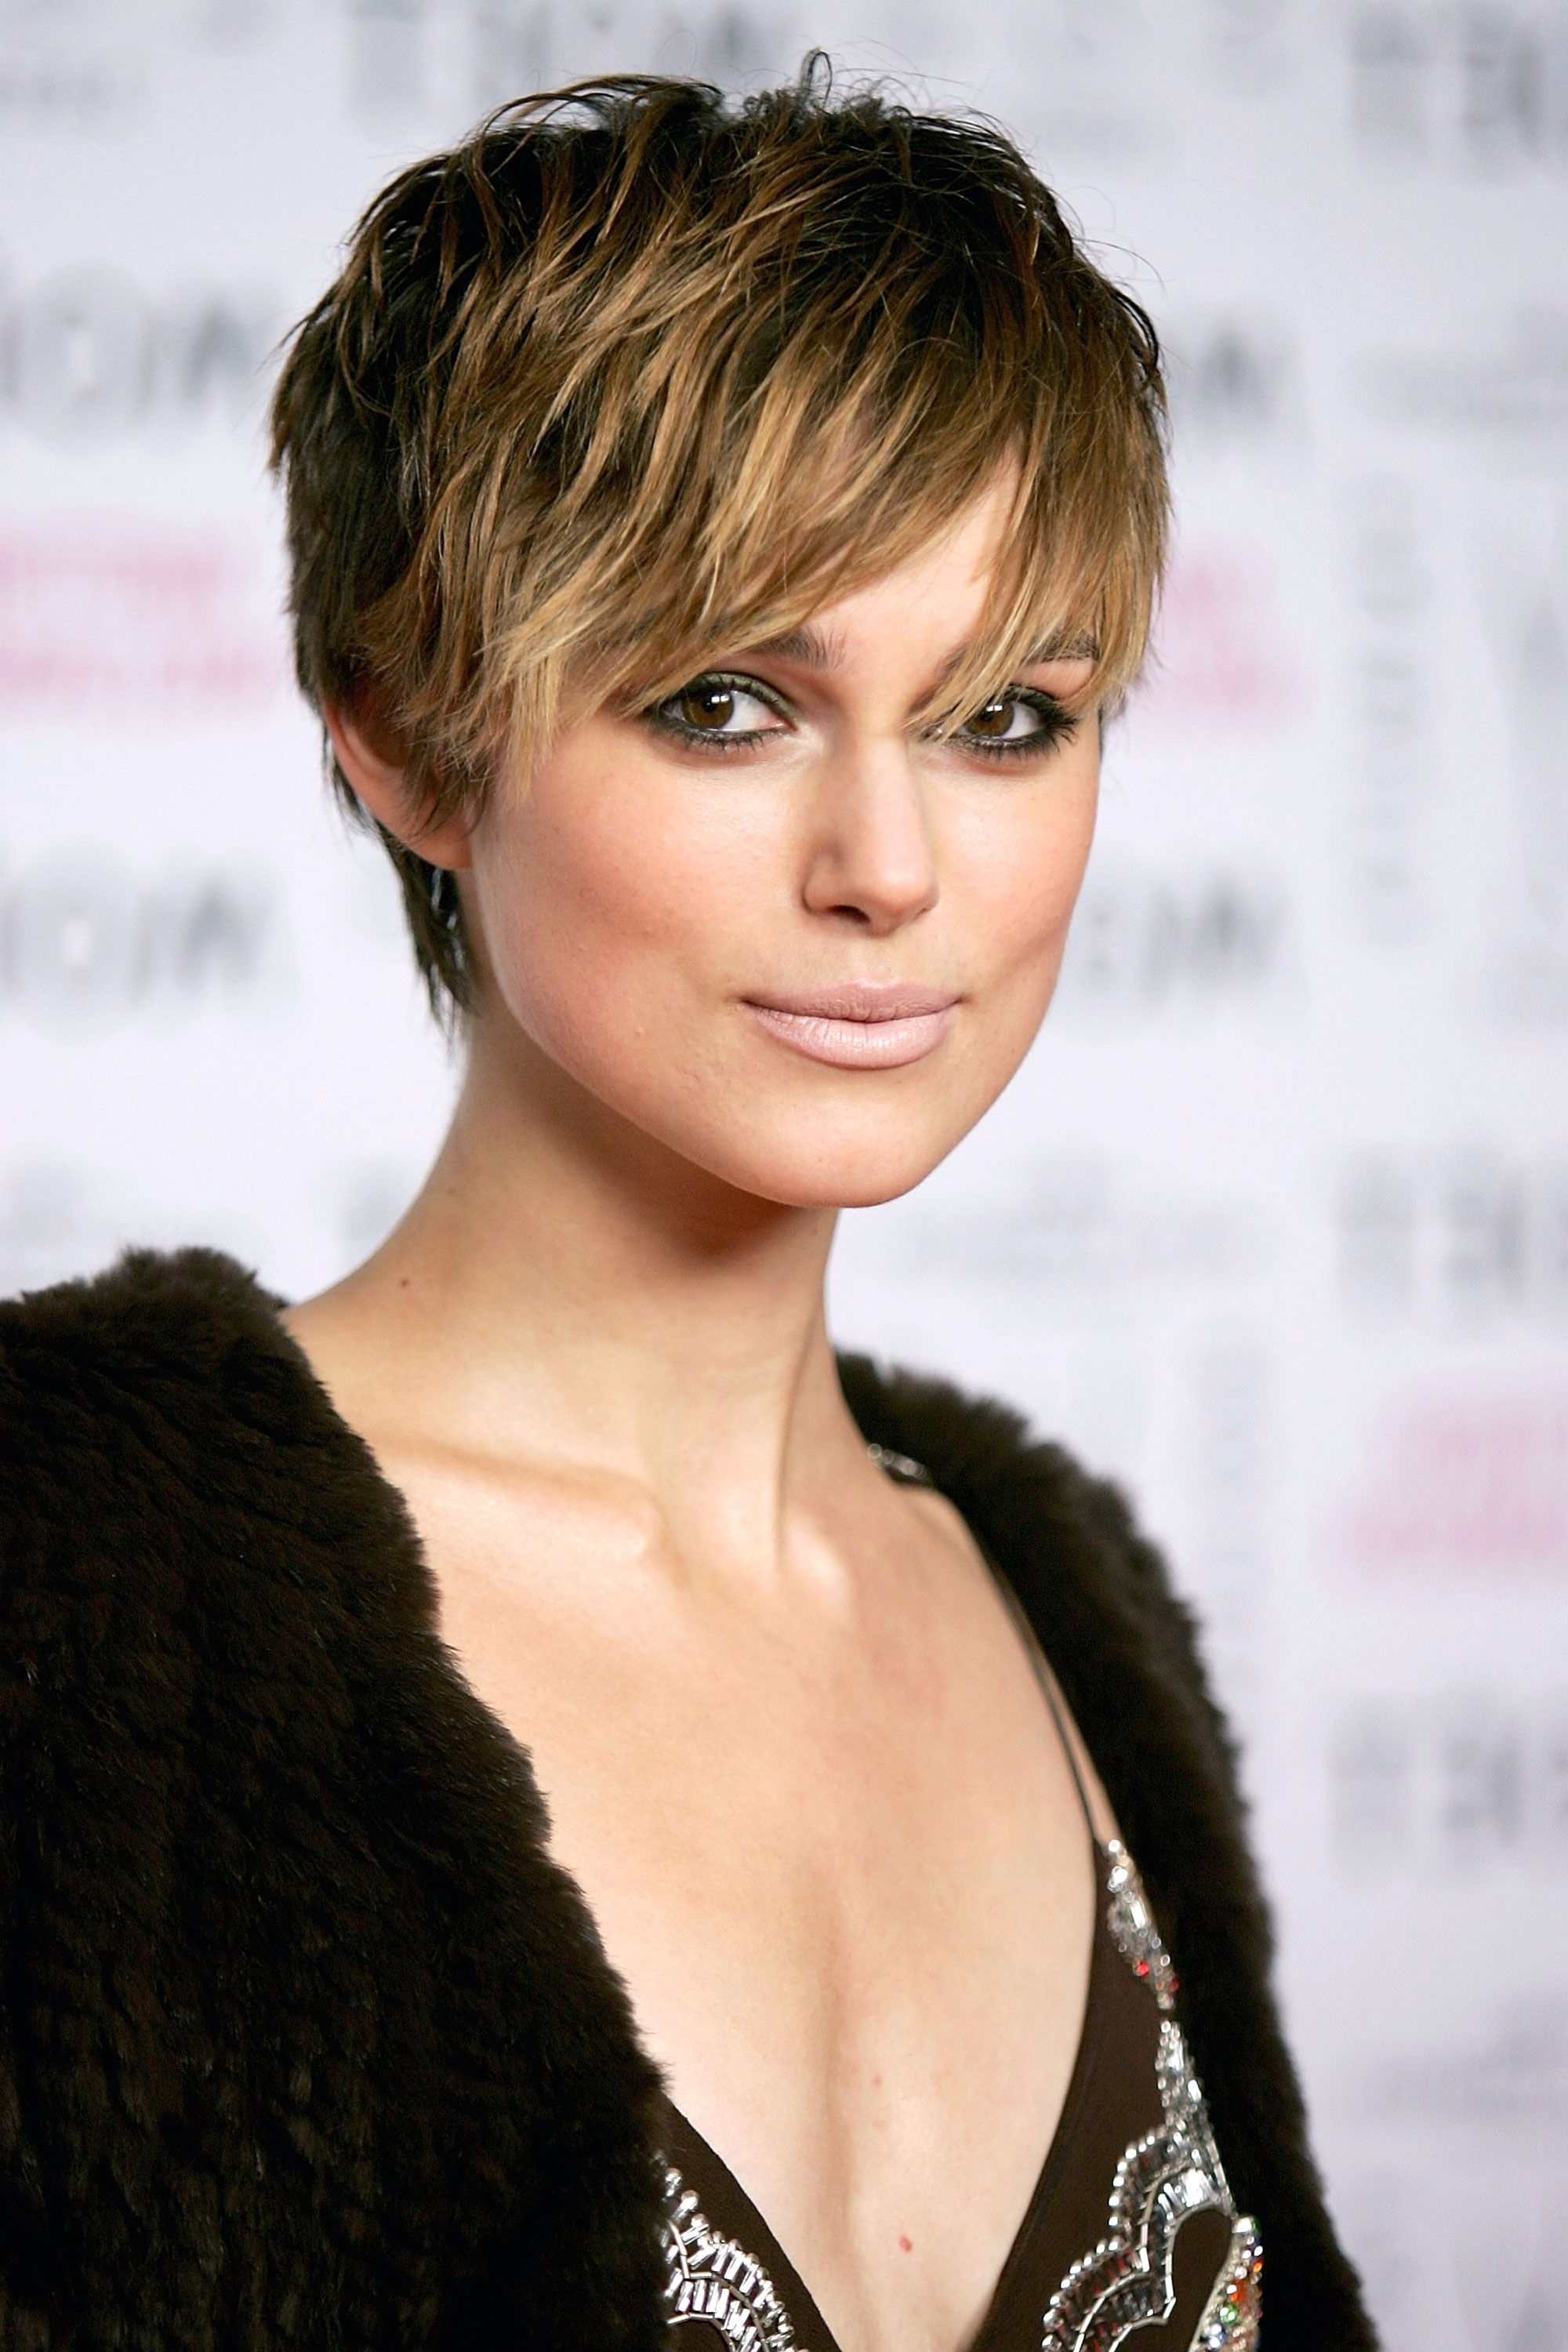 explore photos of pixie hairstyles for square face (showing 2 of 15